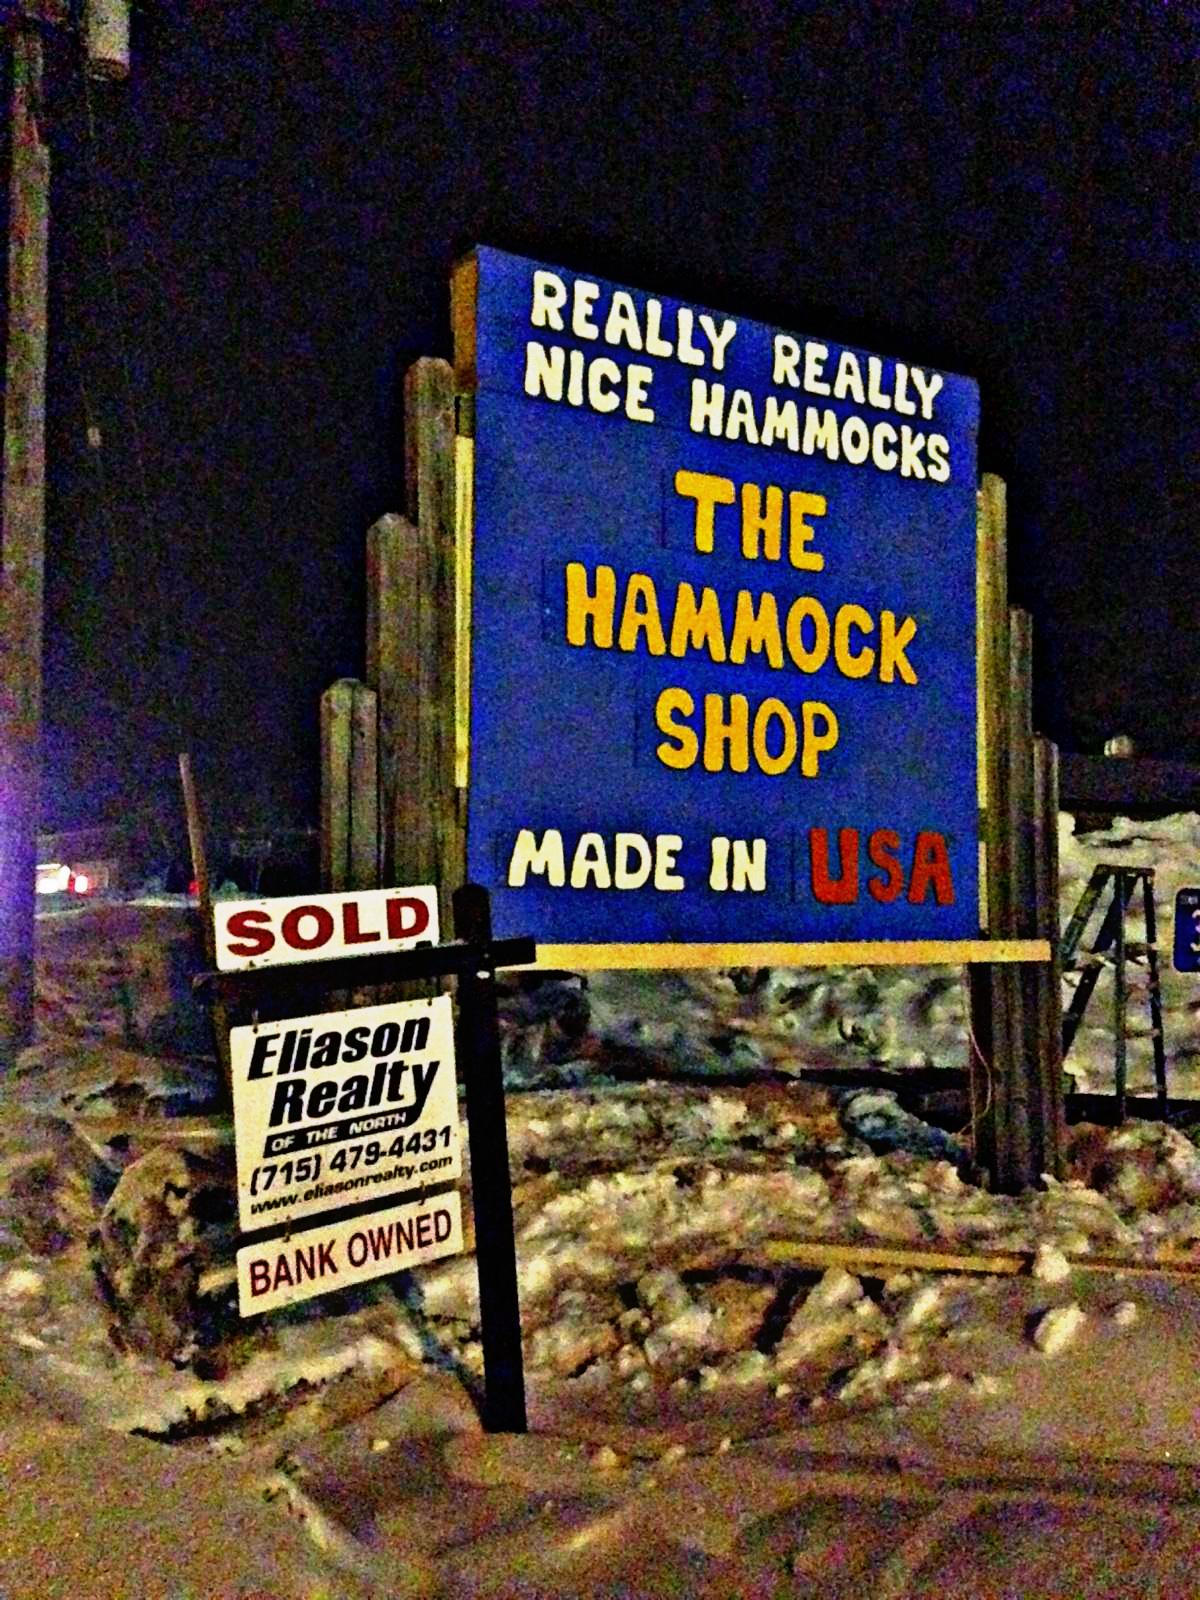 Hammock-shop-sold-sign-st-germain-wi